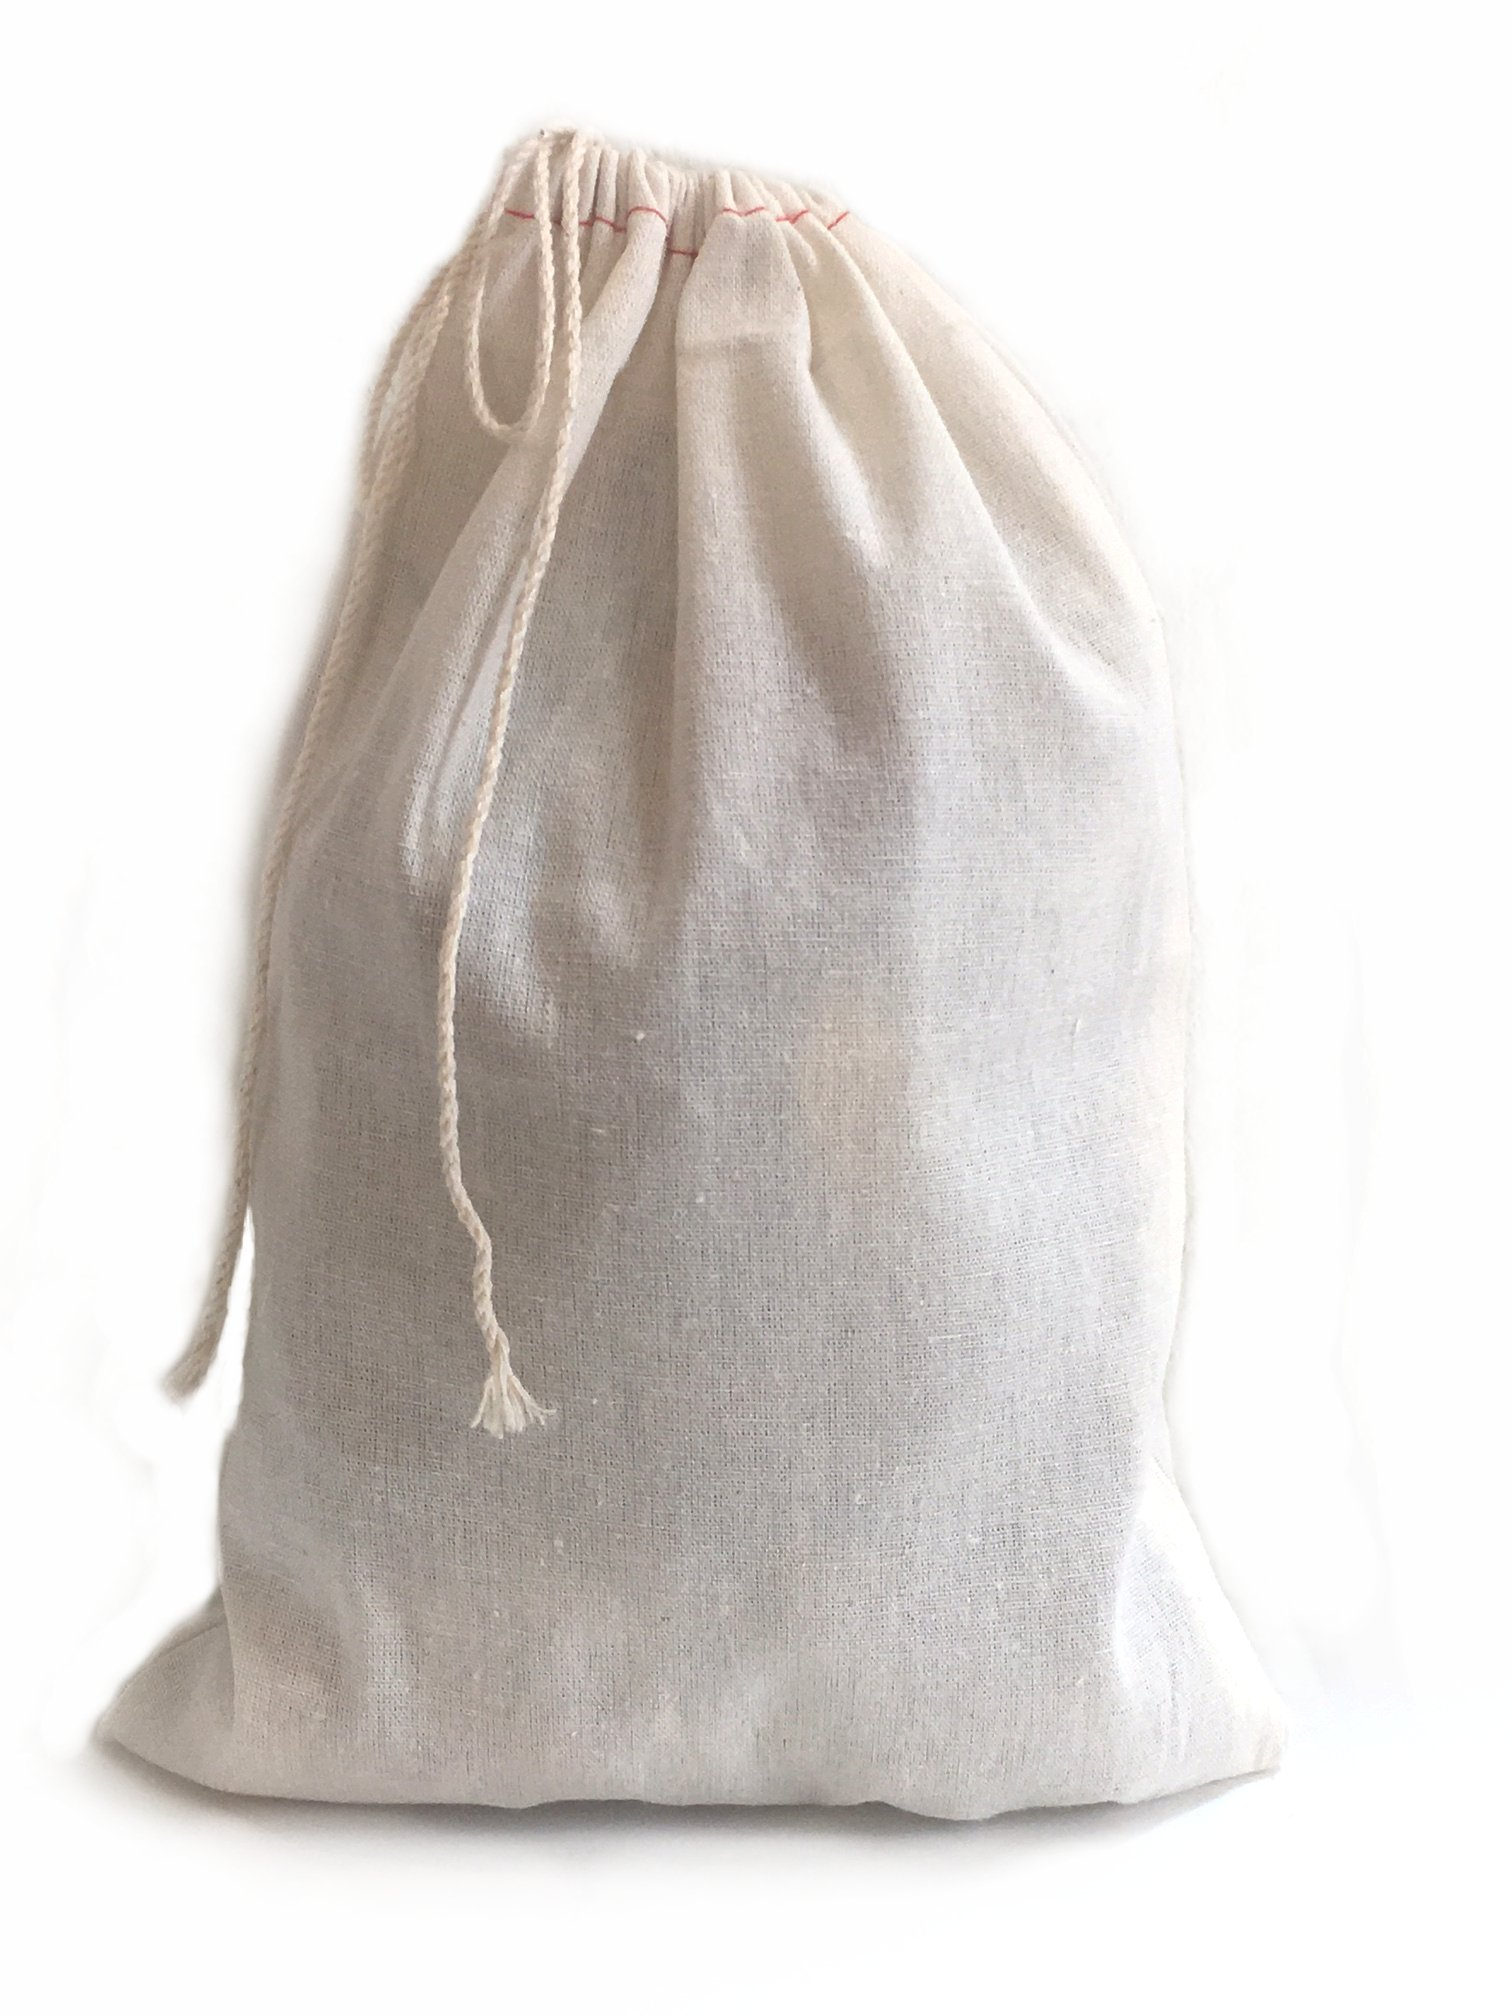 Large Muslin Cotton Drawstring Bag 8x12 inch 10 count by Pure Joy Concepts